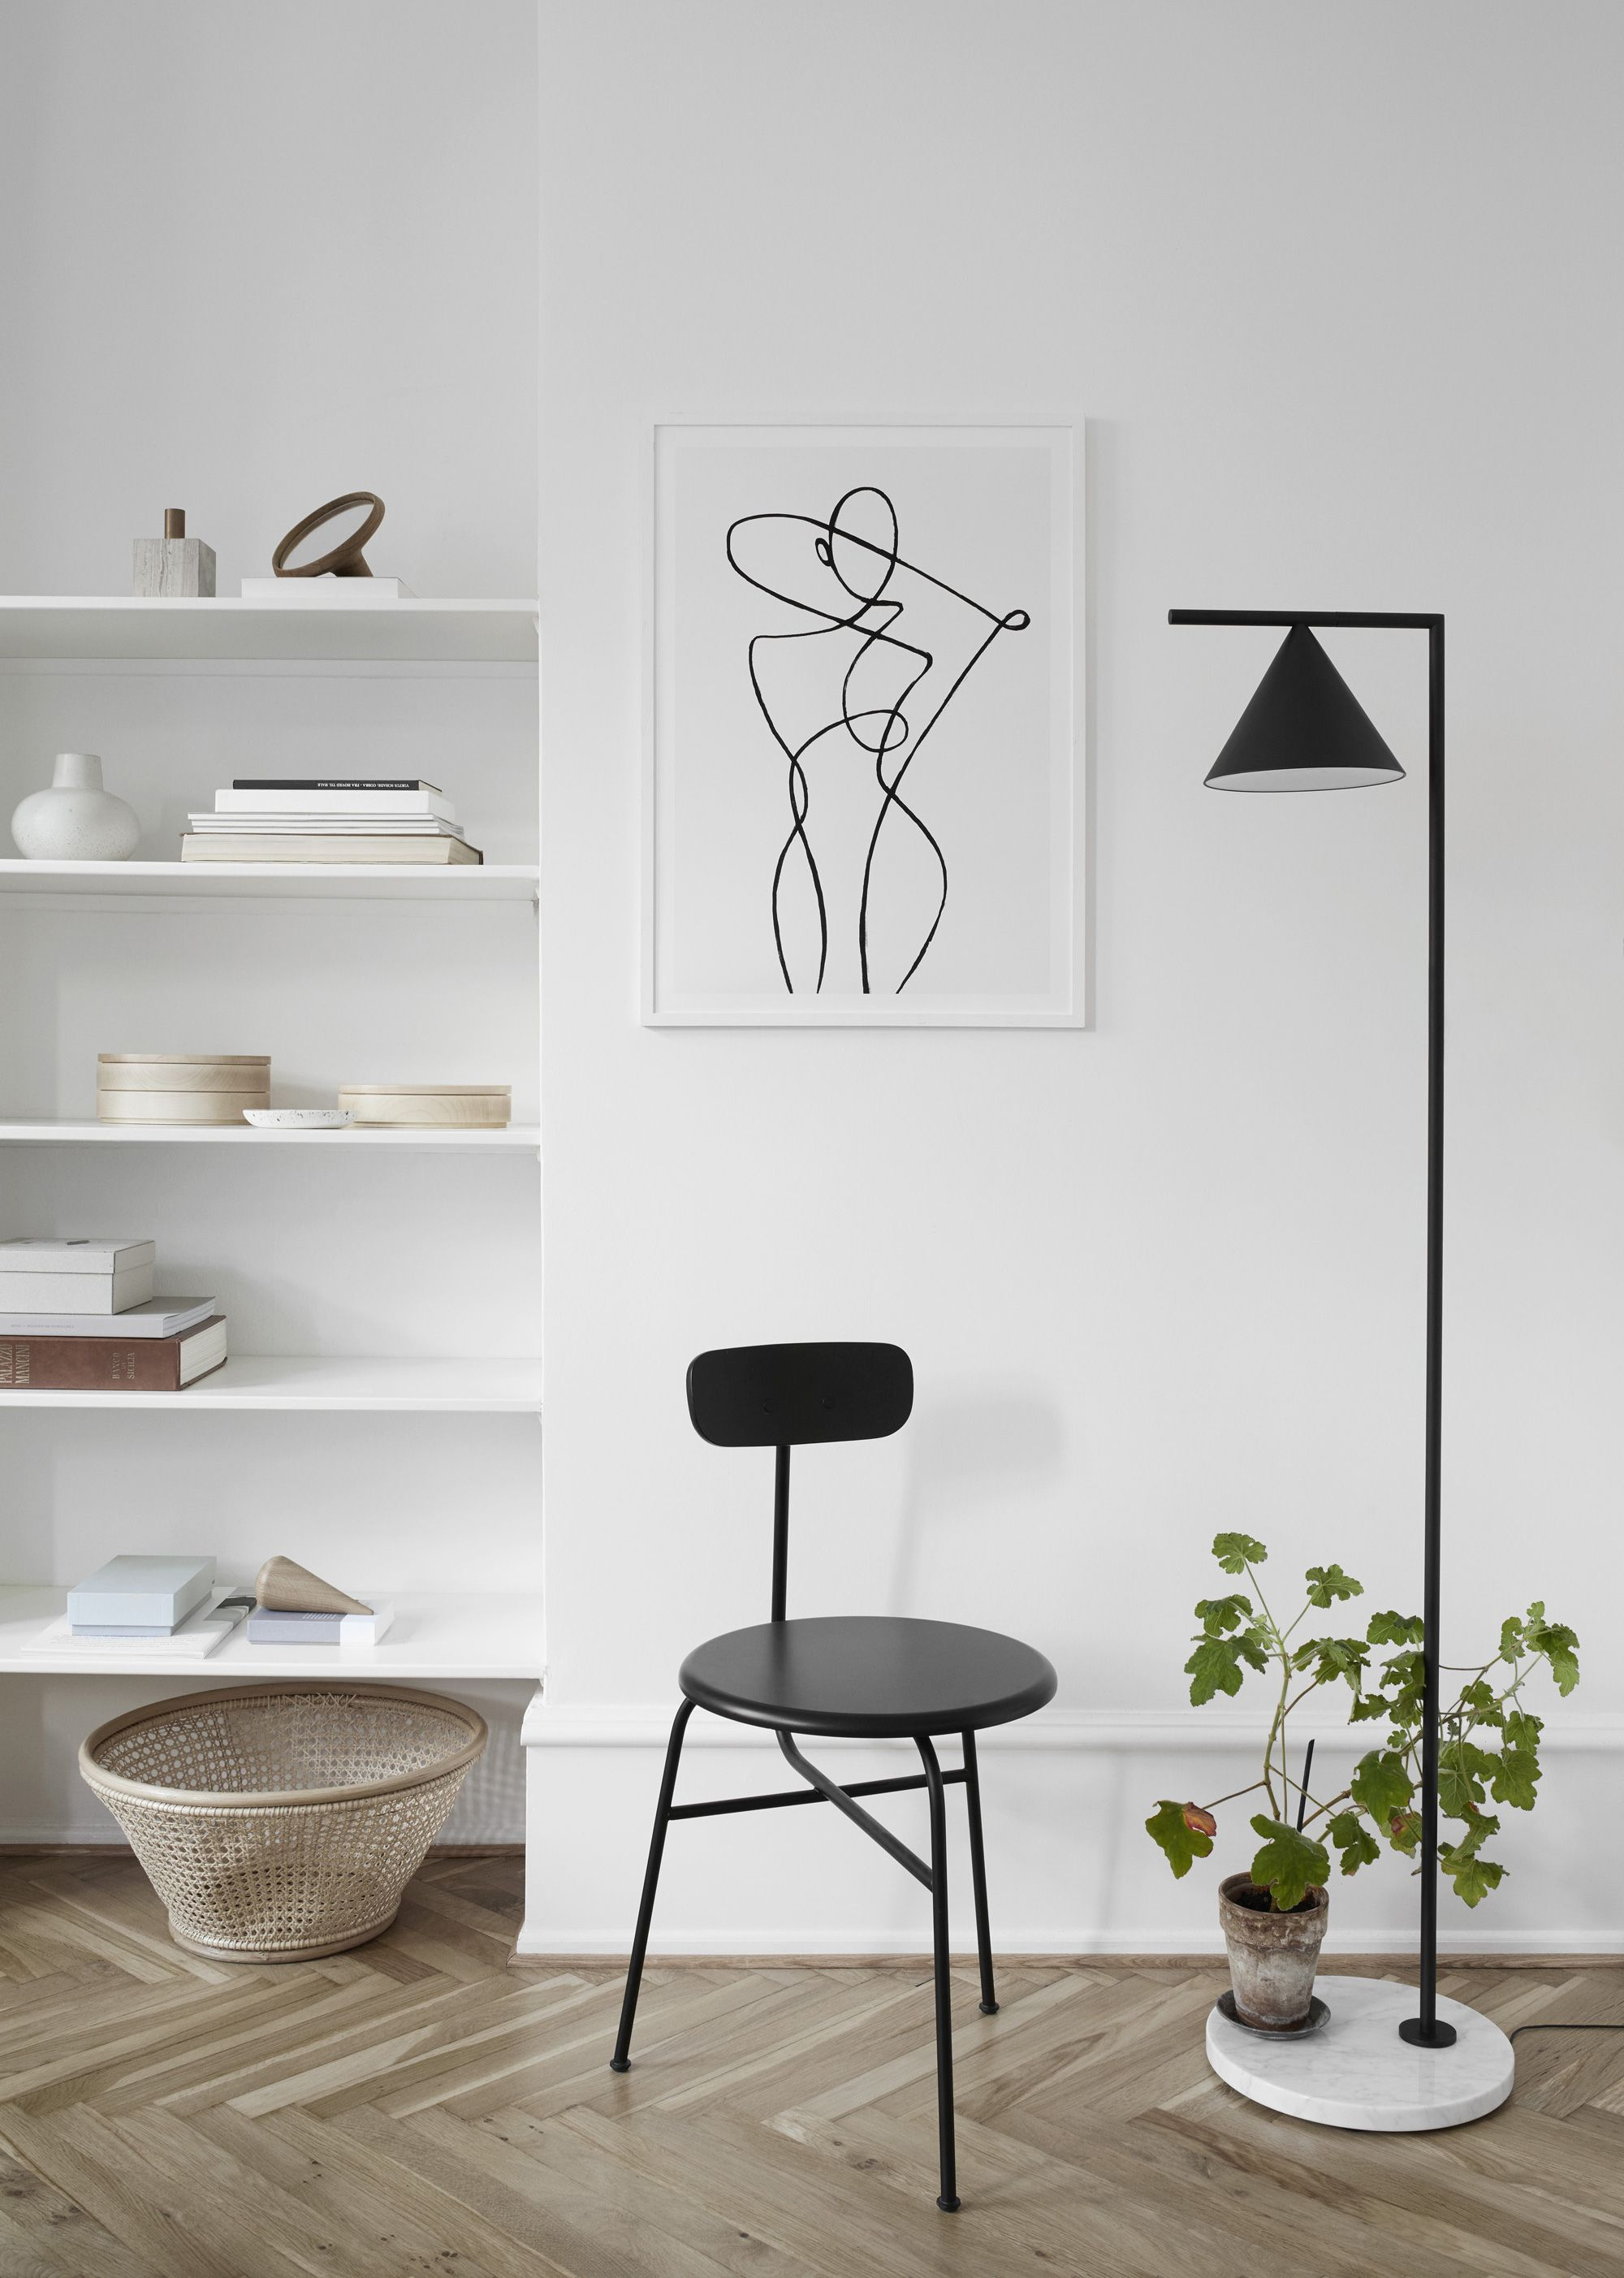 Antibes | Interior styling, Art posters and Minimal